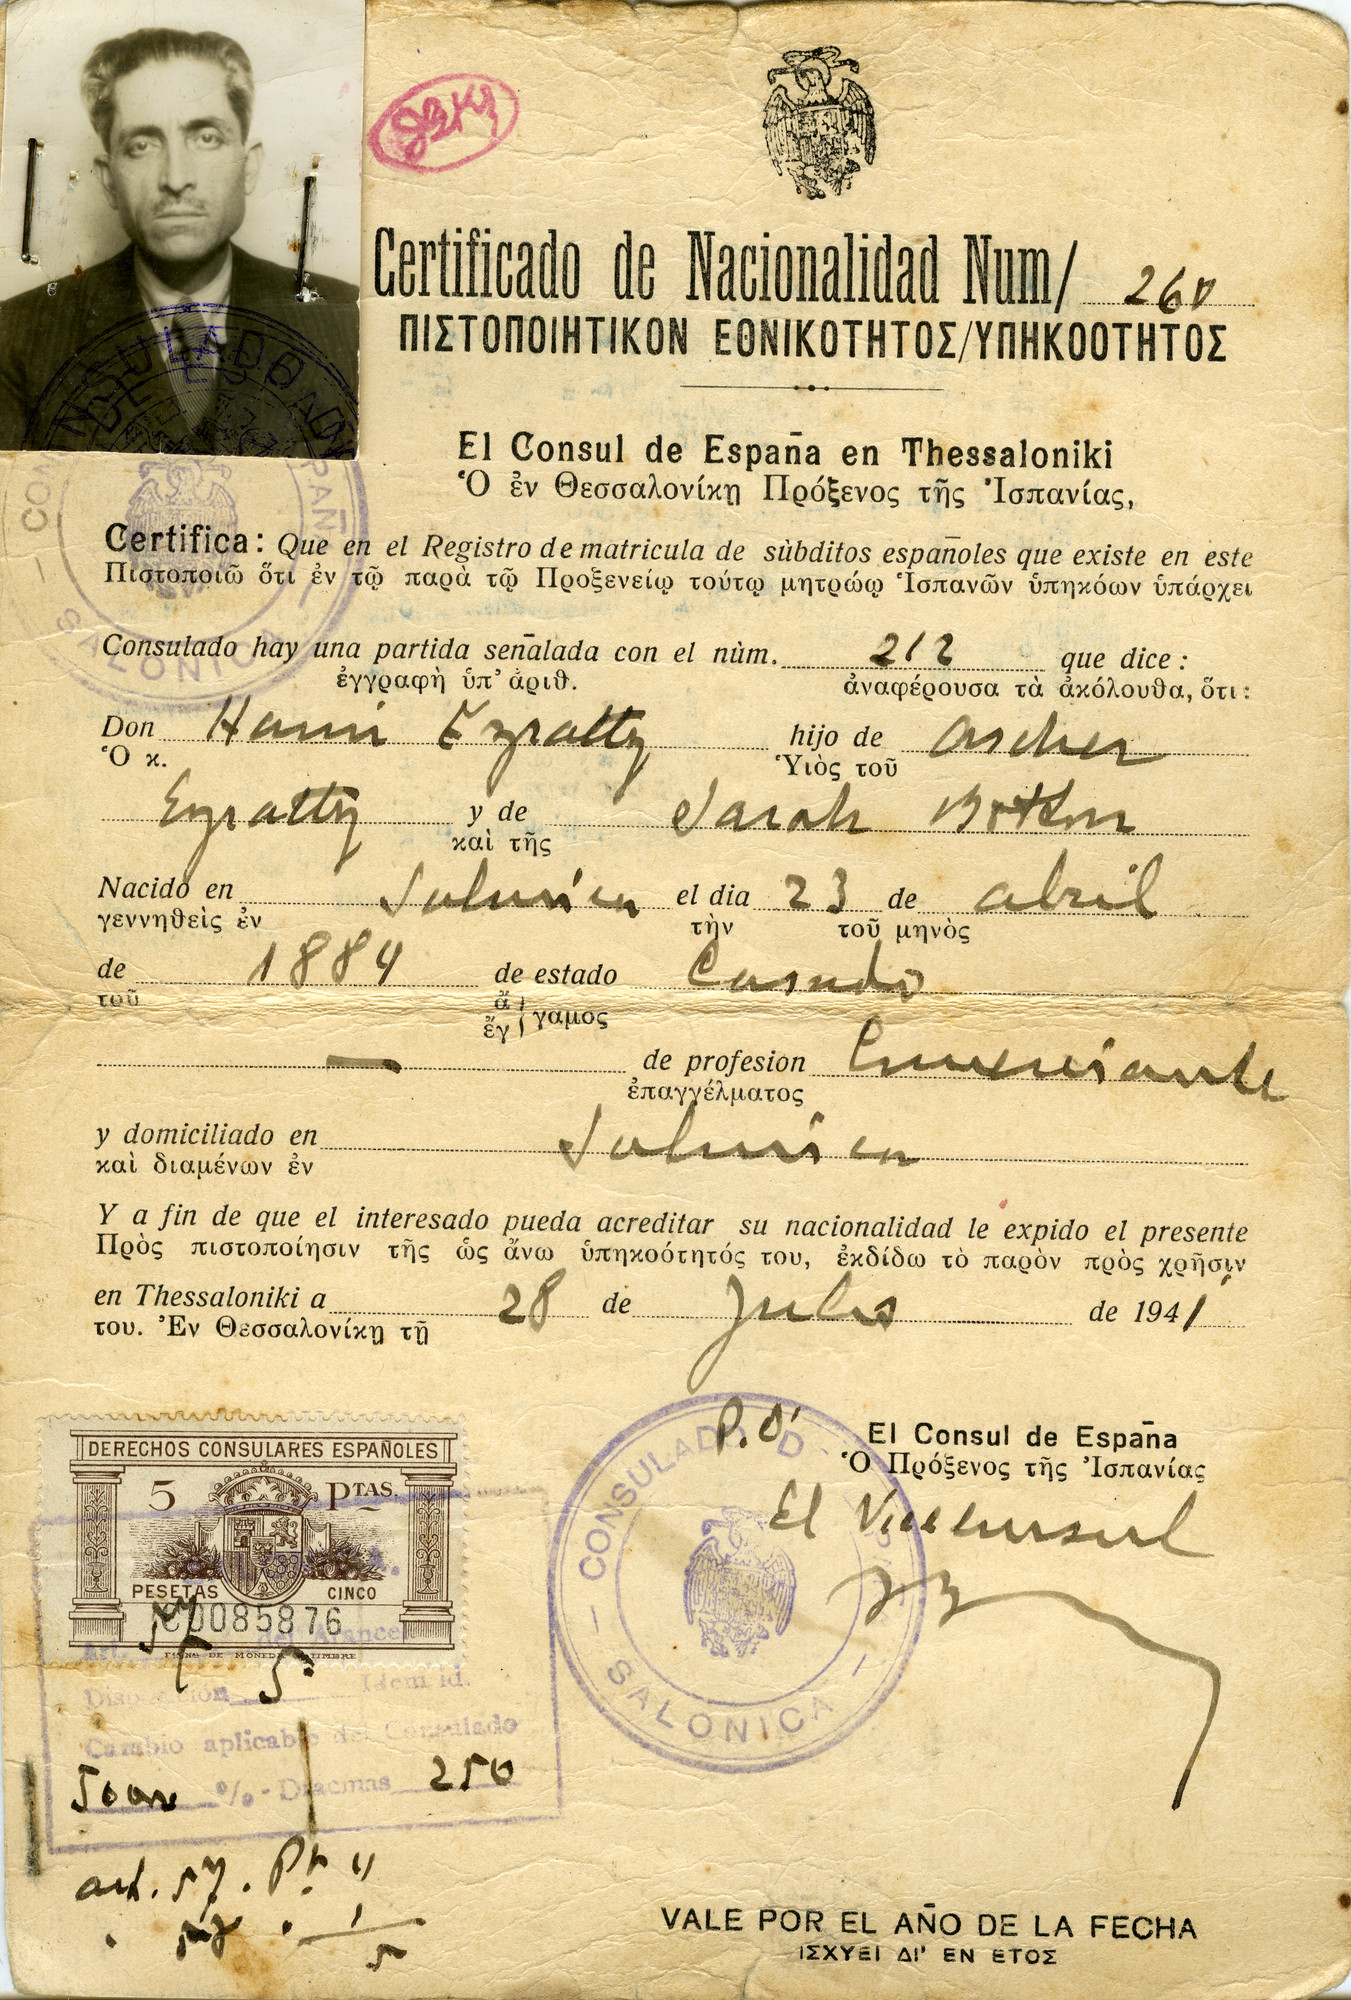 Spanish Certificate Of Nationality For Haim Ezratty Collections